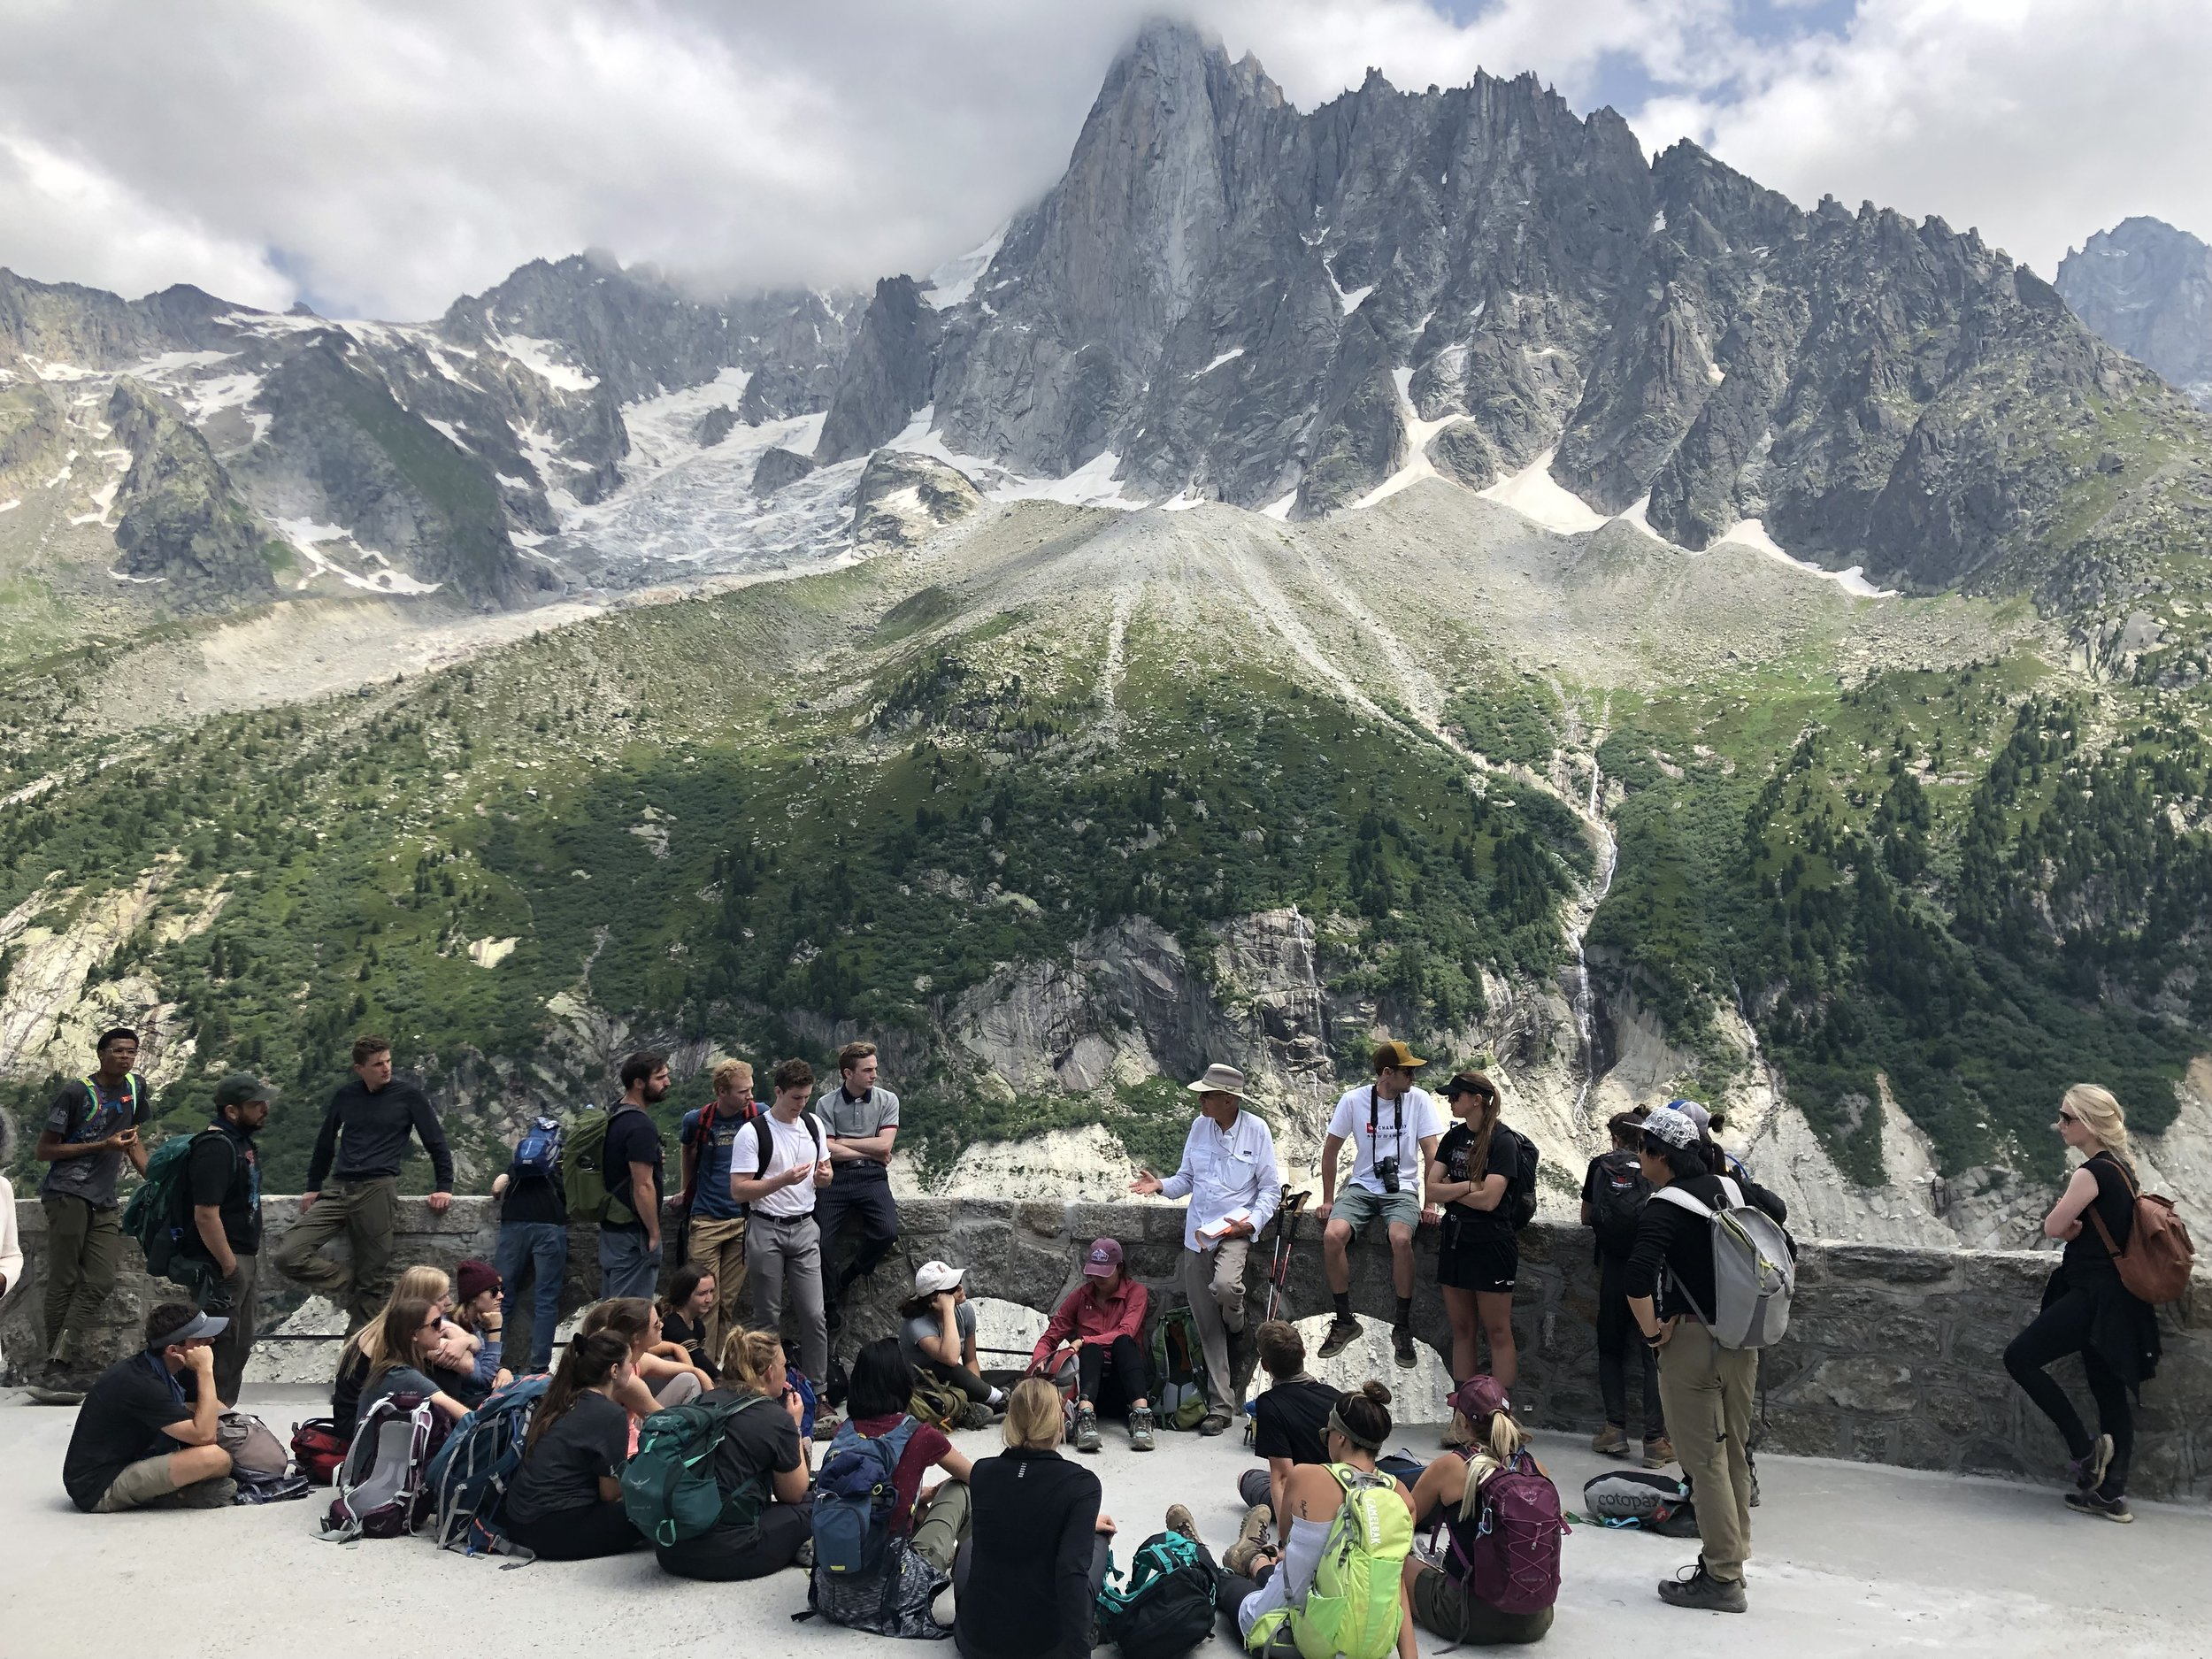 Learning about glaciers at the Mer de Glace glacier